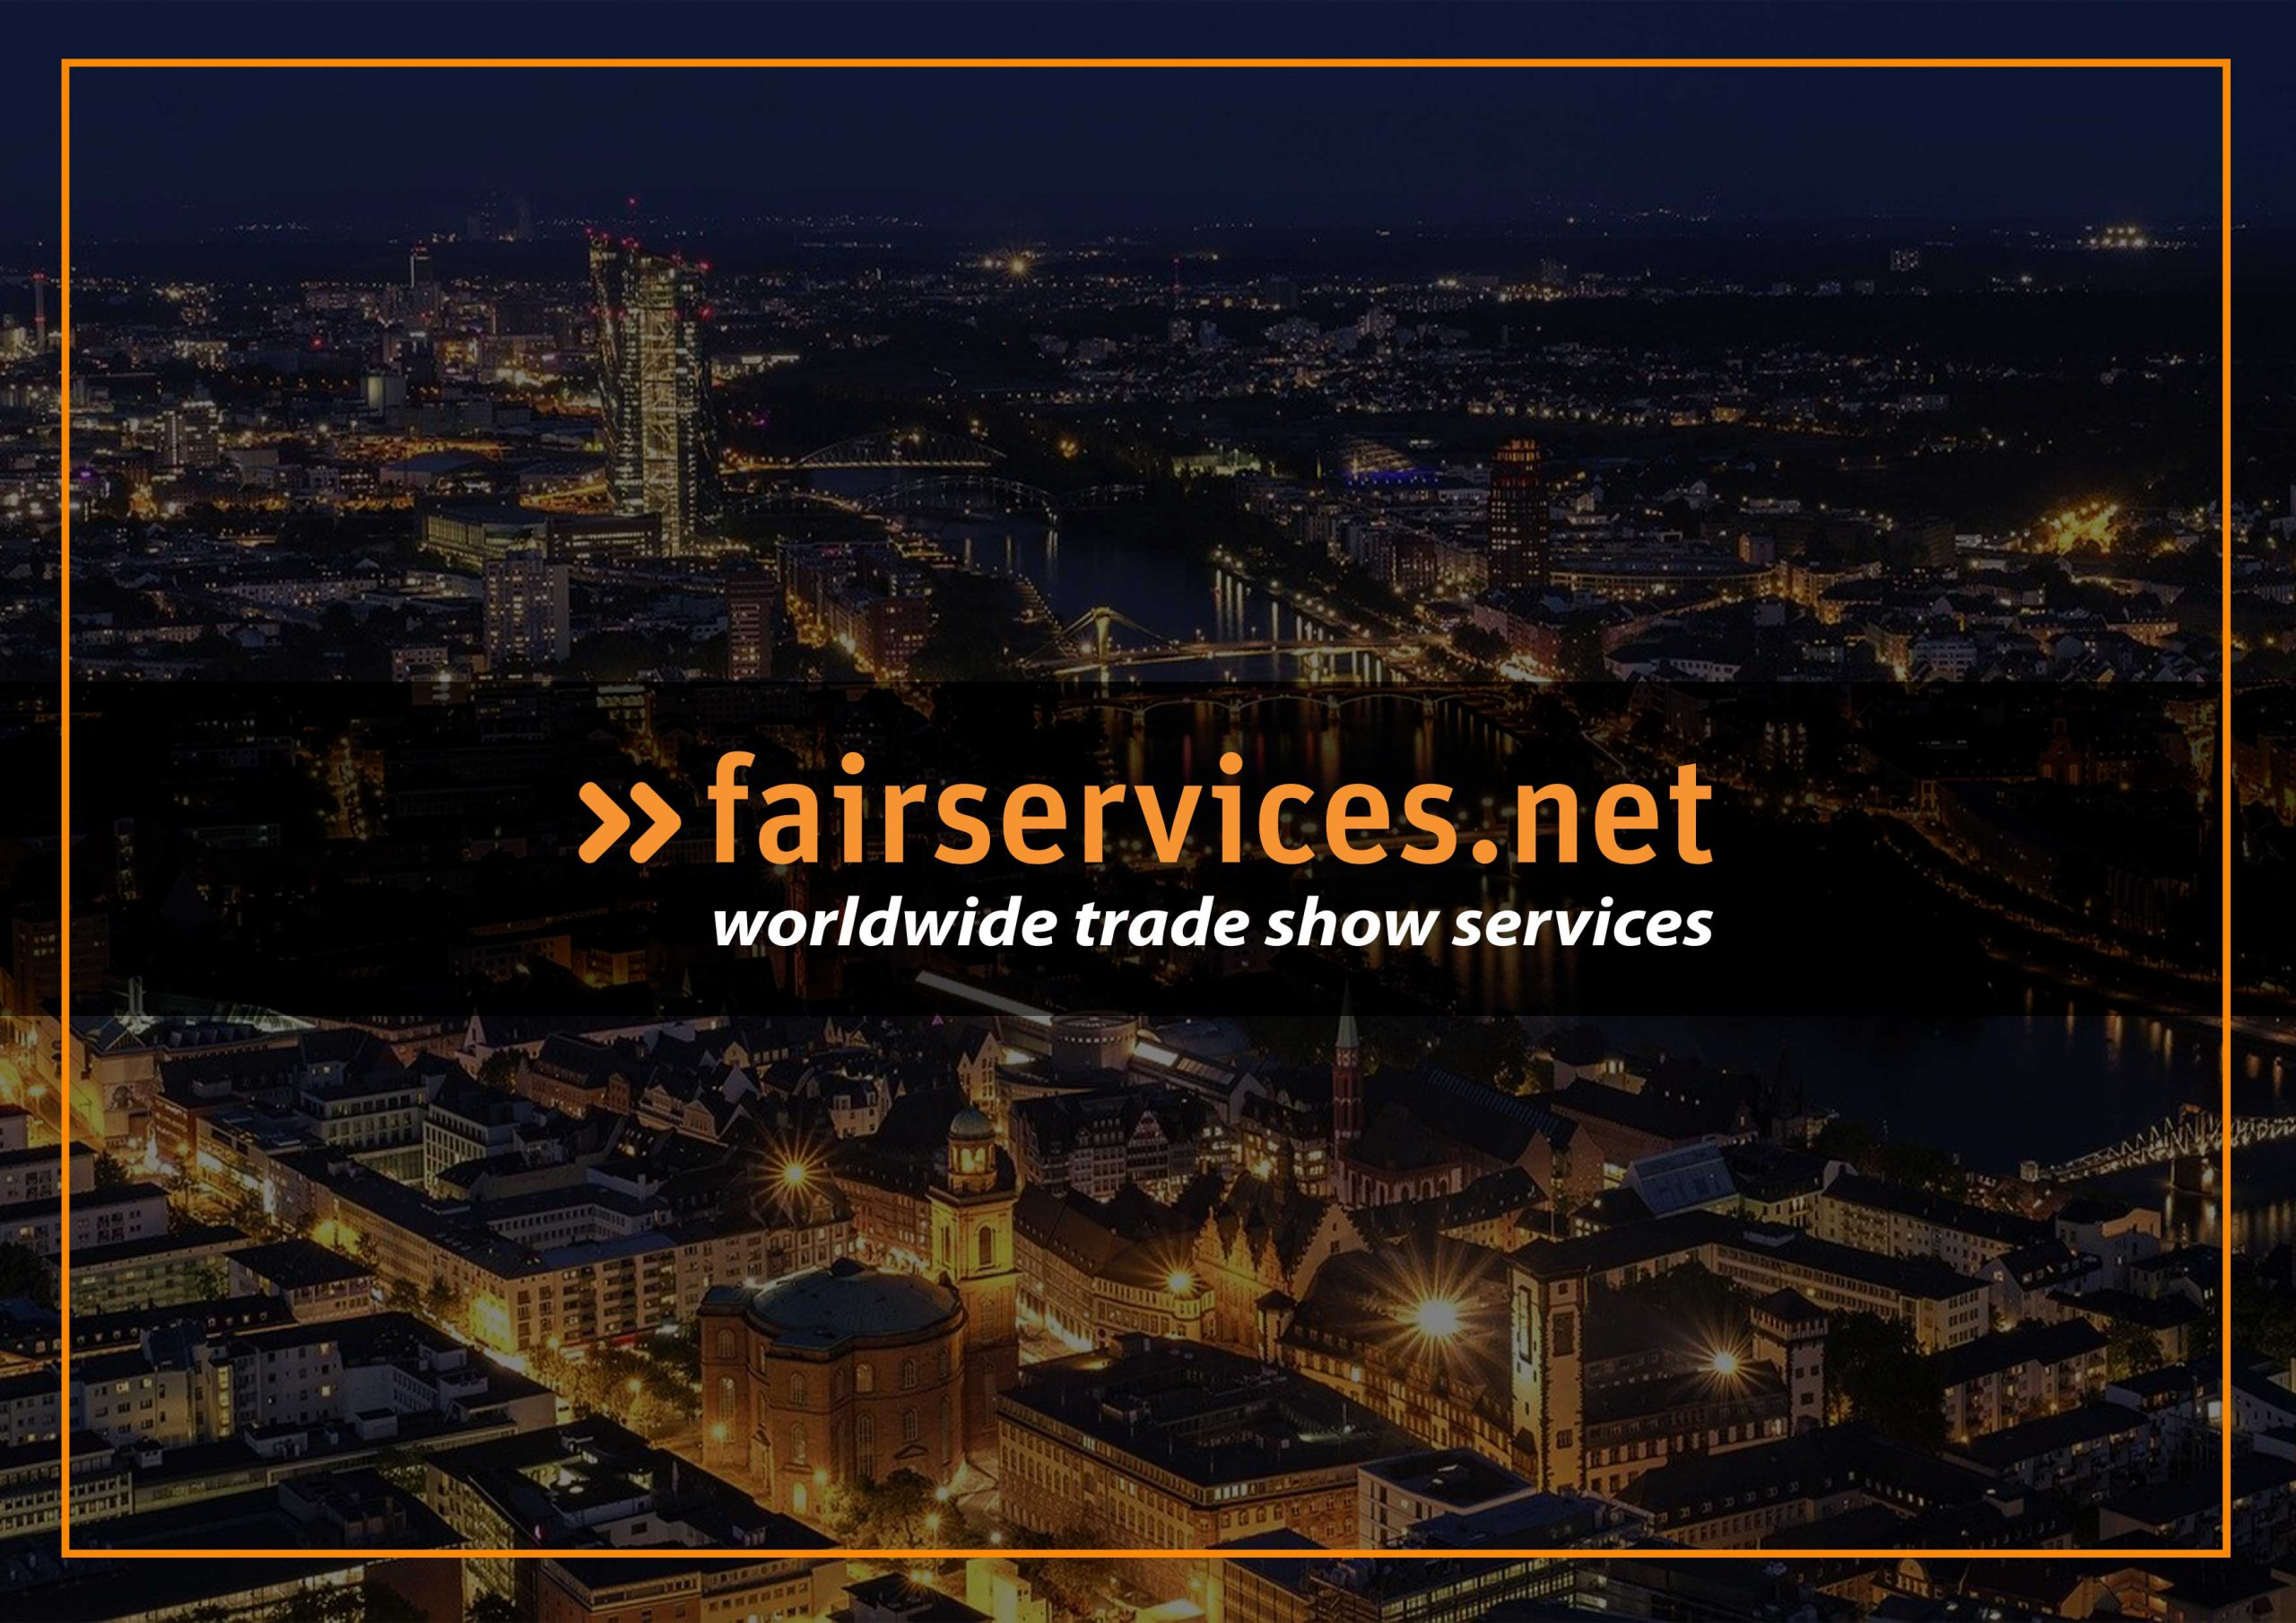 Fairservices Logo in front of night skyline